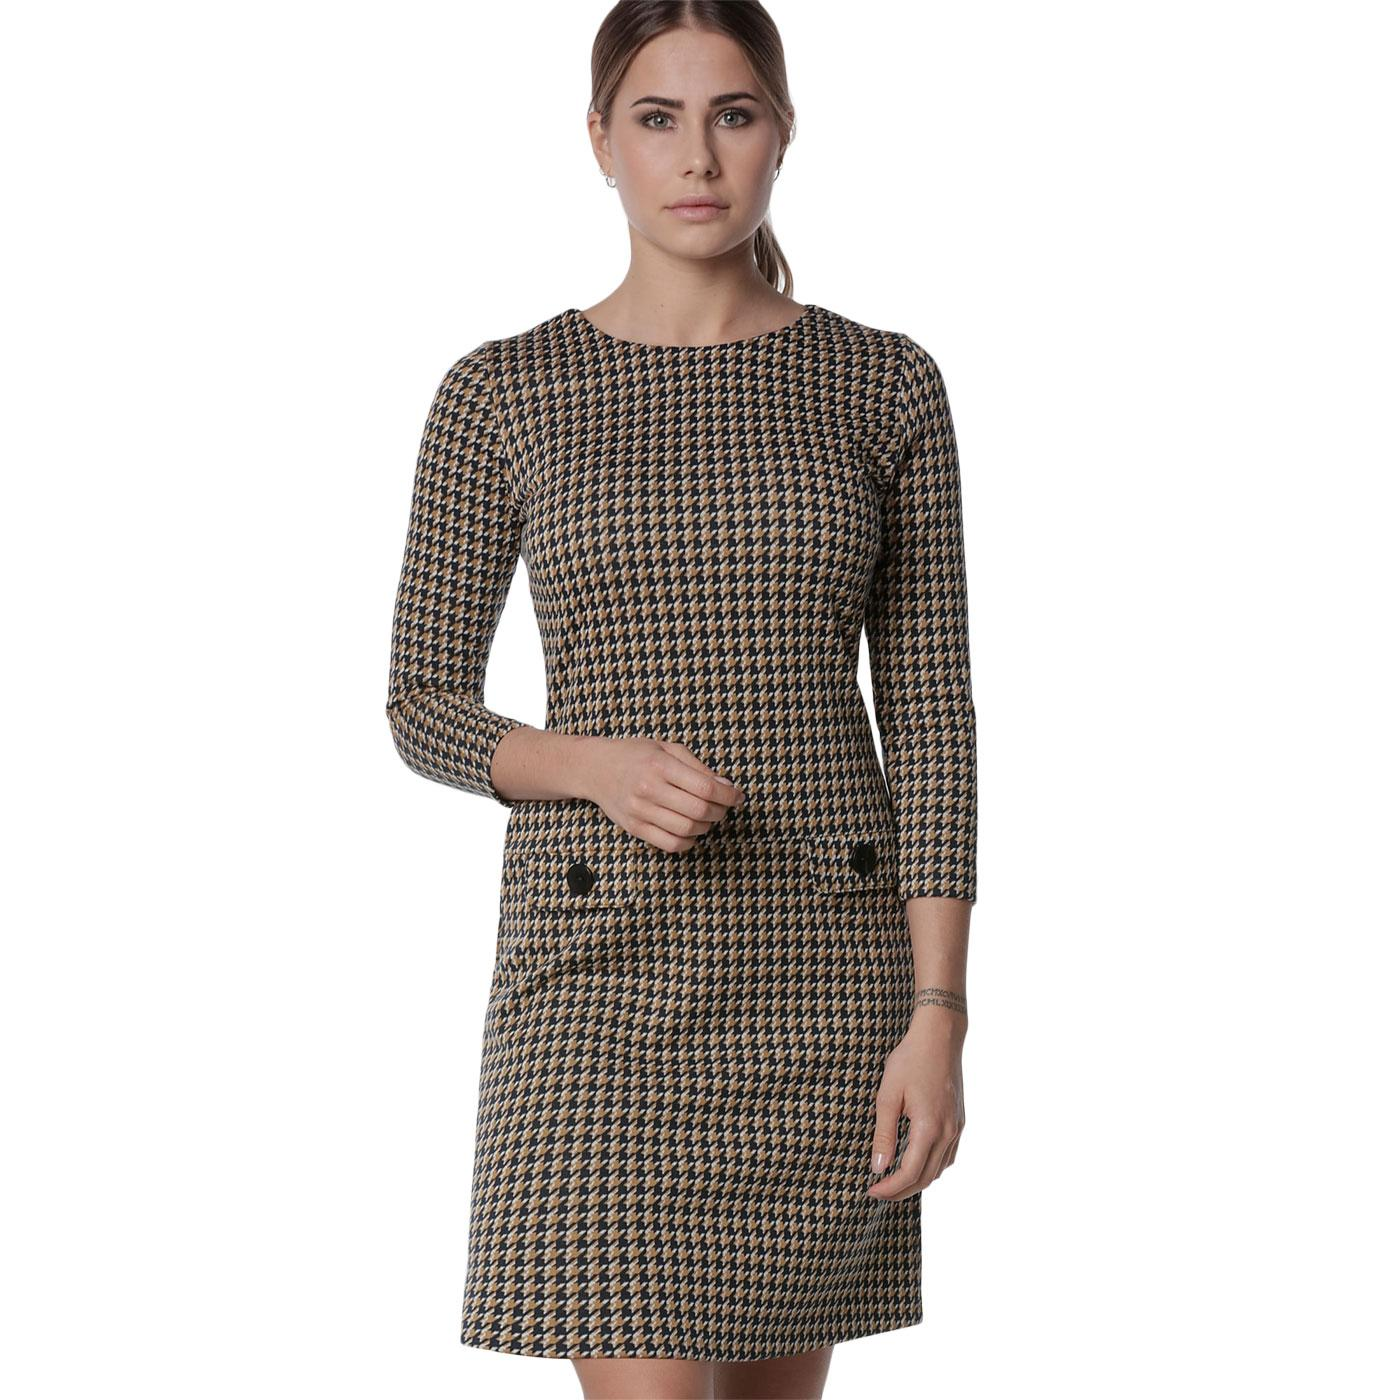 MADEMOISELLE YEYE Nine to Five Mod Dogtooth Dress